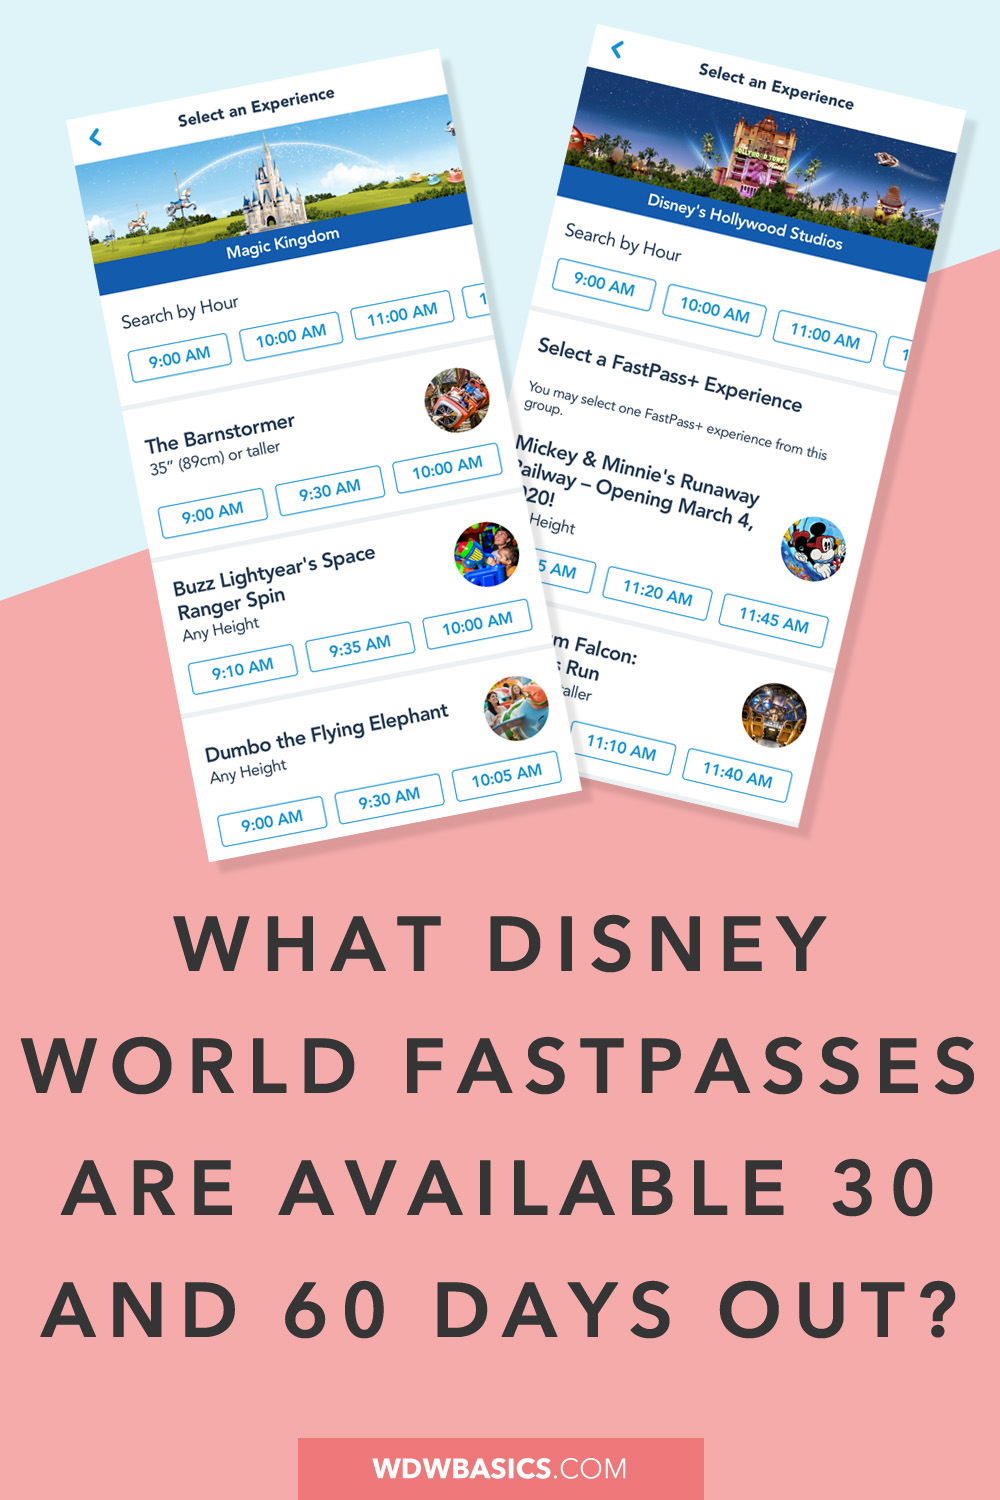 What Disney World FastPasses are available 30 and 60 days out?